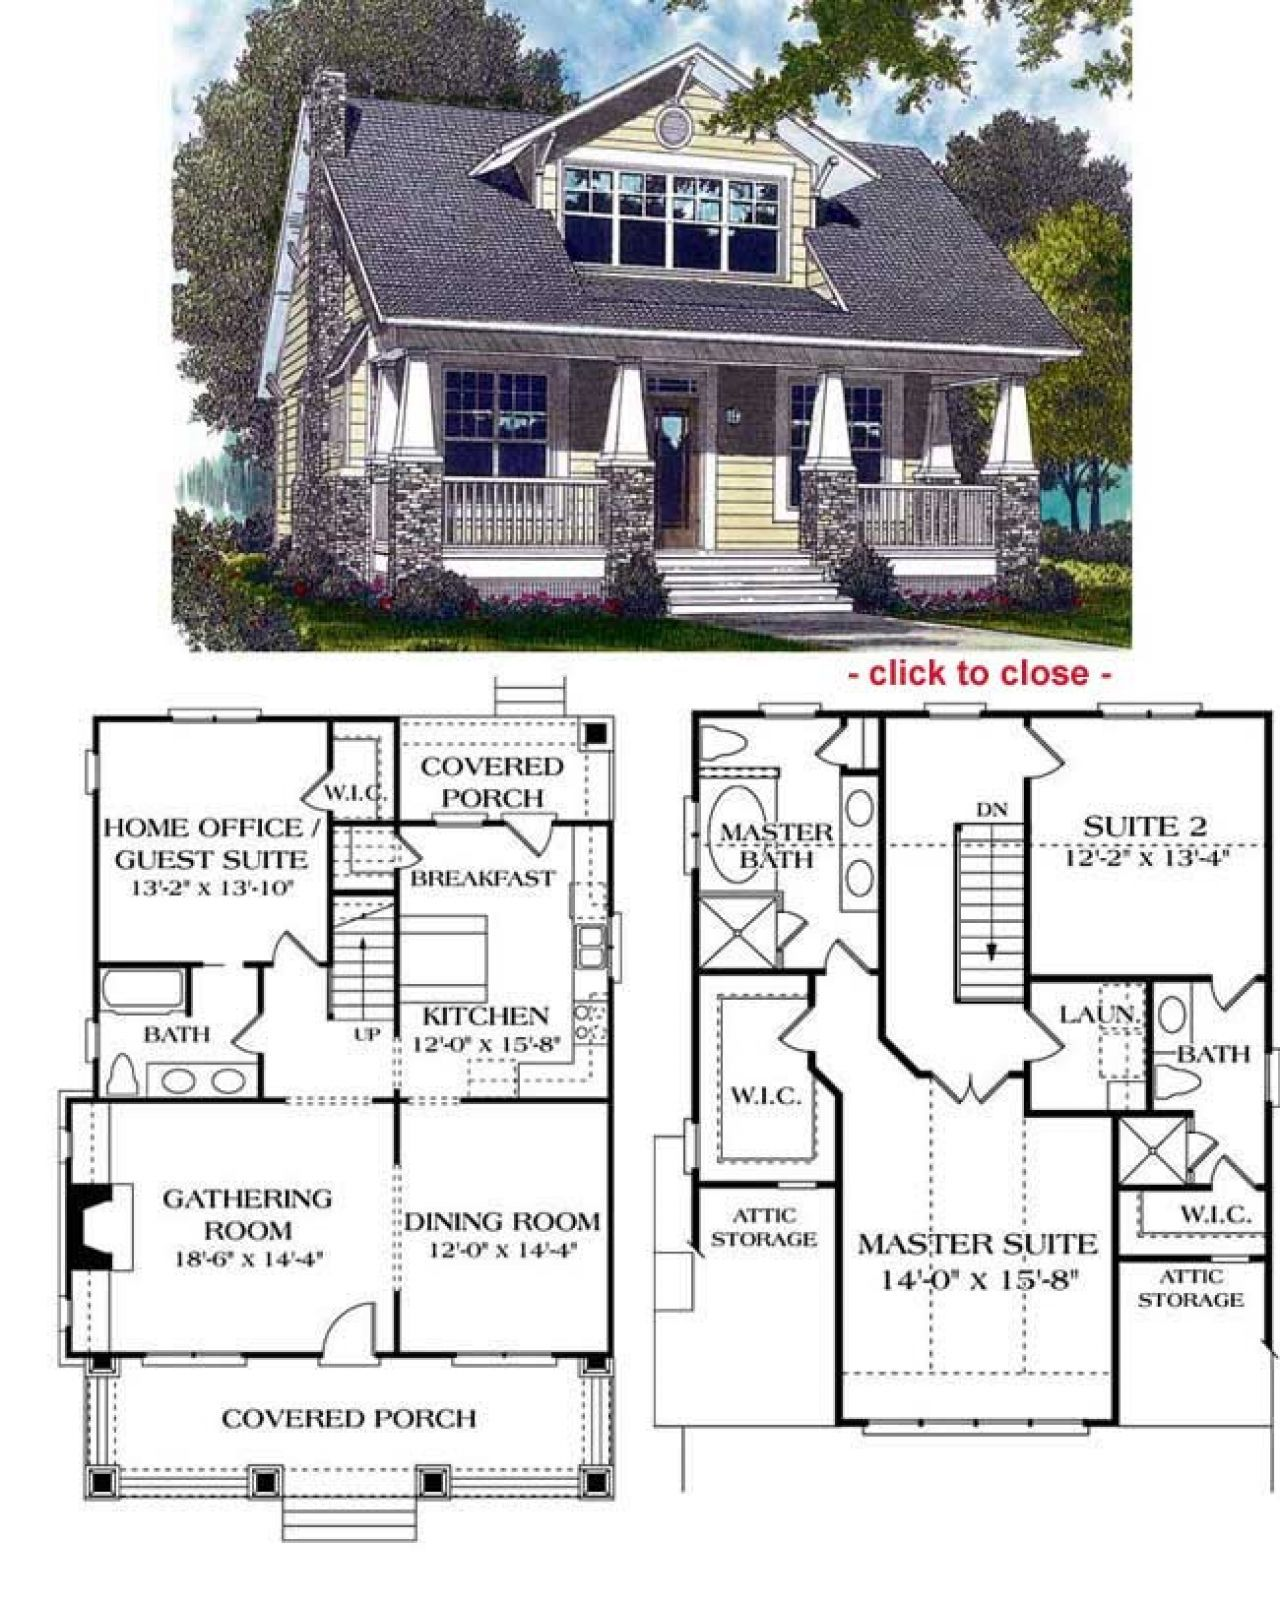 House Plans Craftsman Style Bungalow In 2020 Bungalow Floor Plans Craftsman Bungalow House Plans Craftsman House Plans